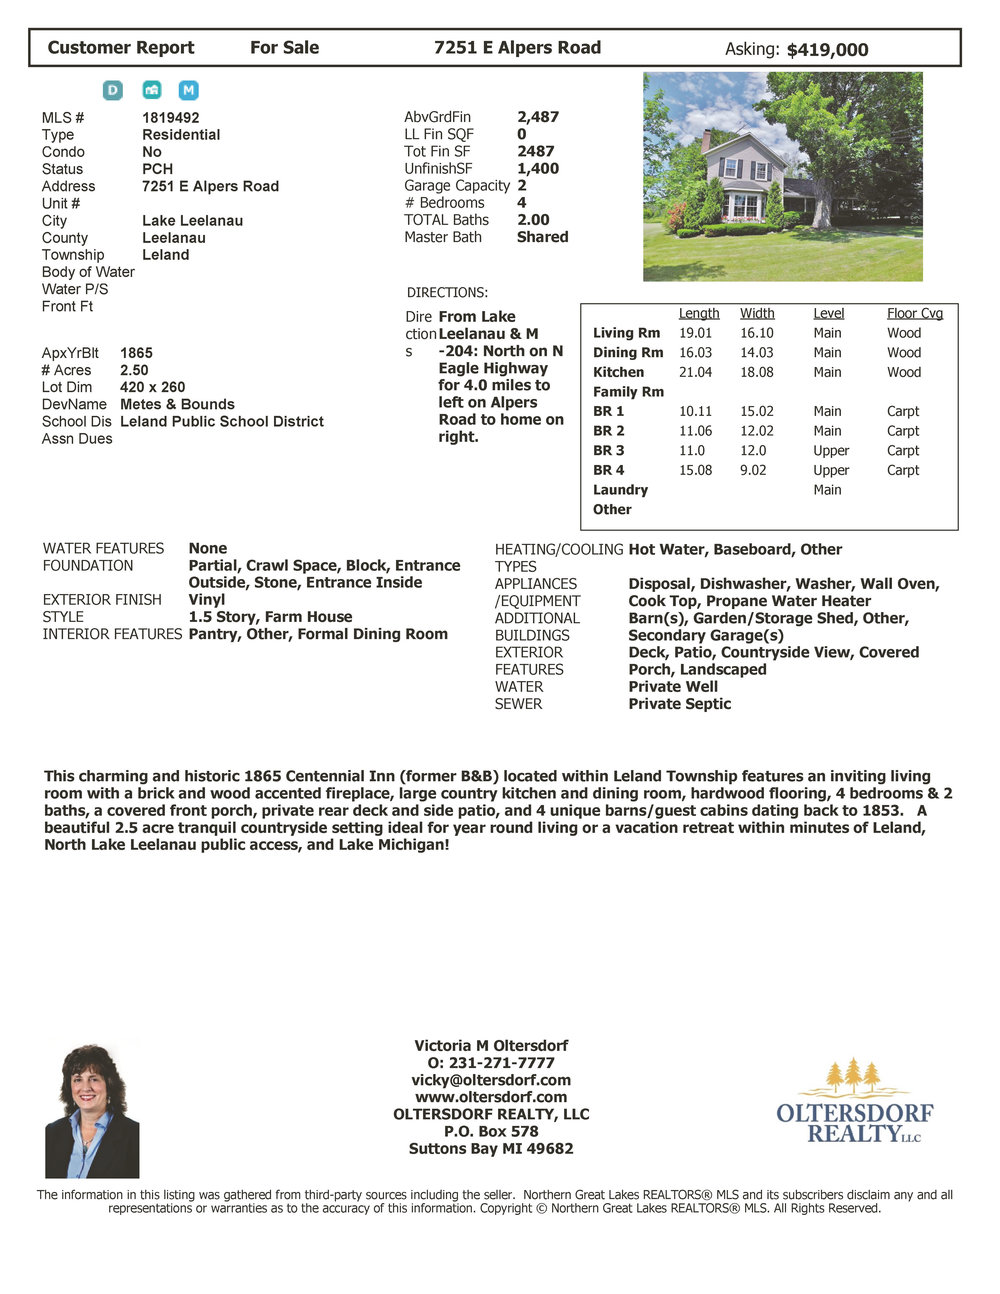 7251 E Alpers Road, Lake Leelanau, Leland township, House, for sale by Oltersdorf Realty - Price Reduction.jpg